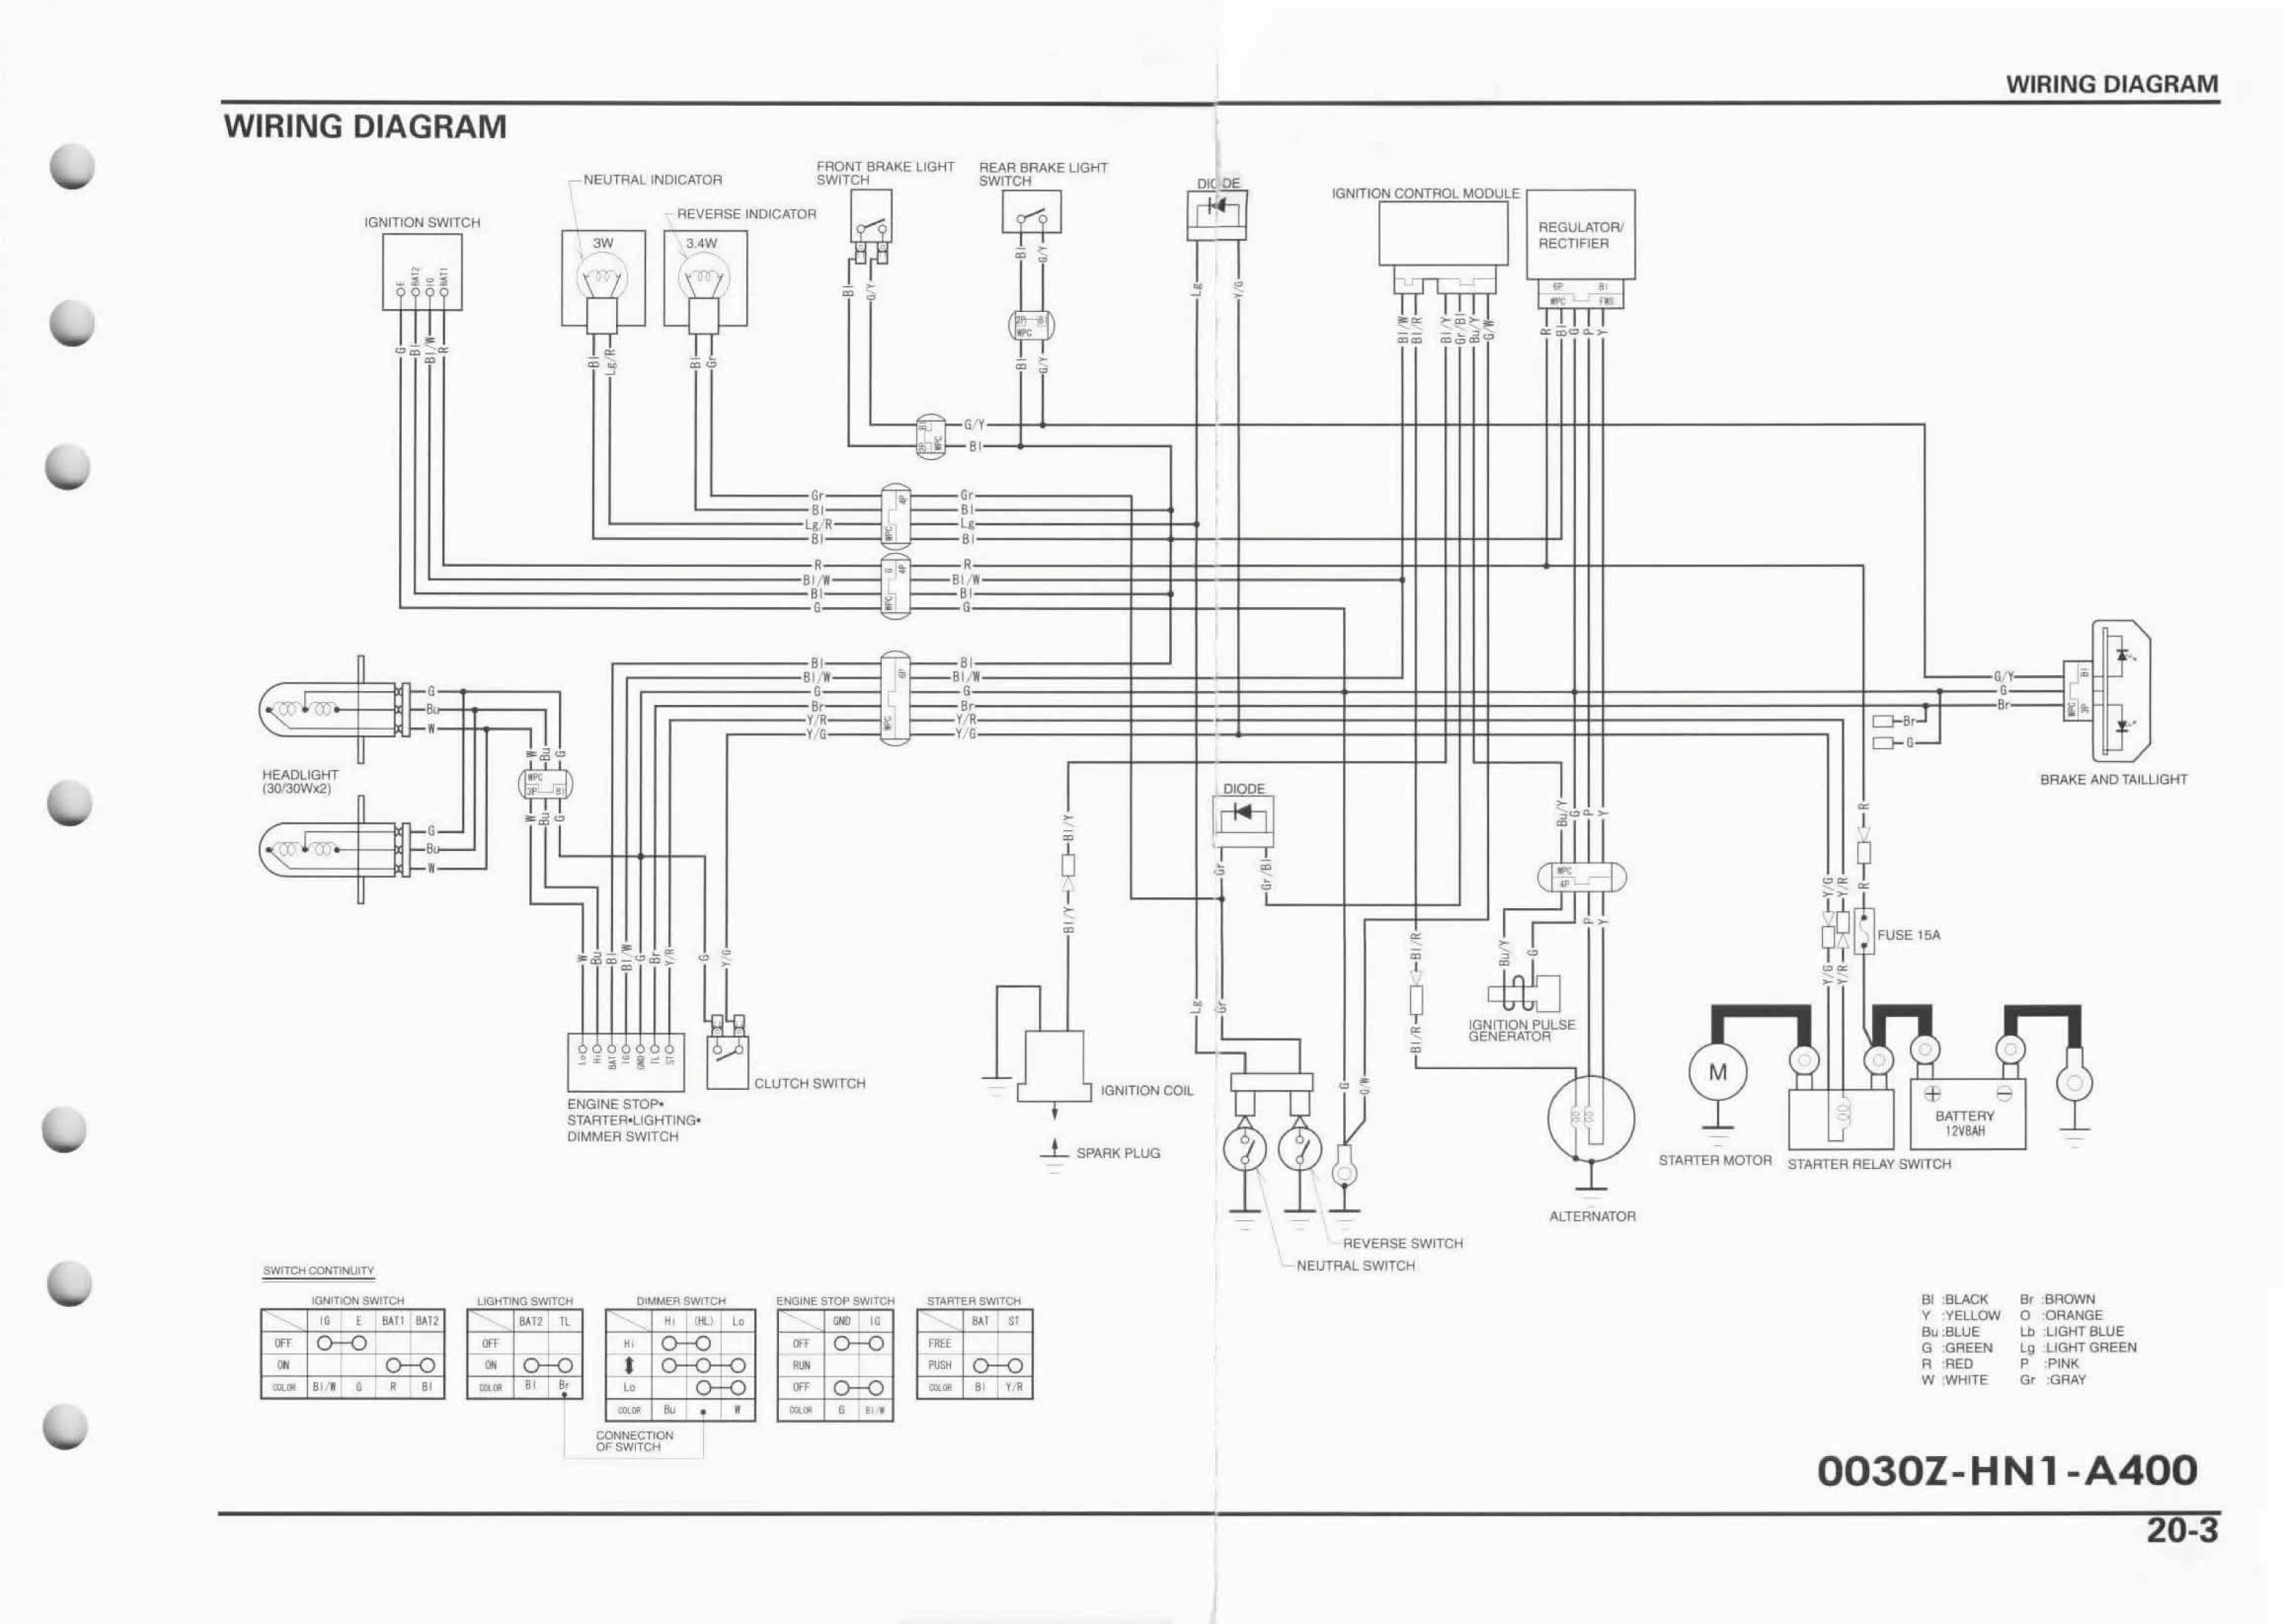 Diagram Additionally 2001 Daewoo Lanos Electrical Wiring Diagram On